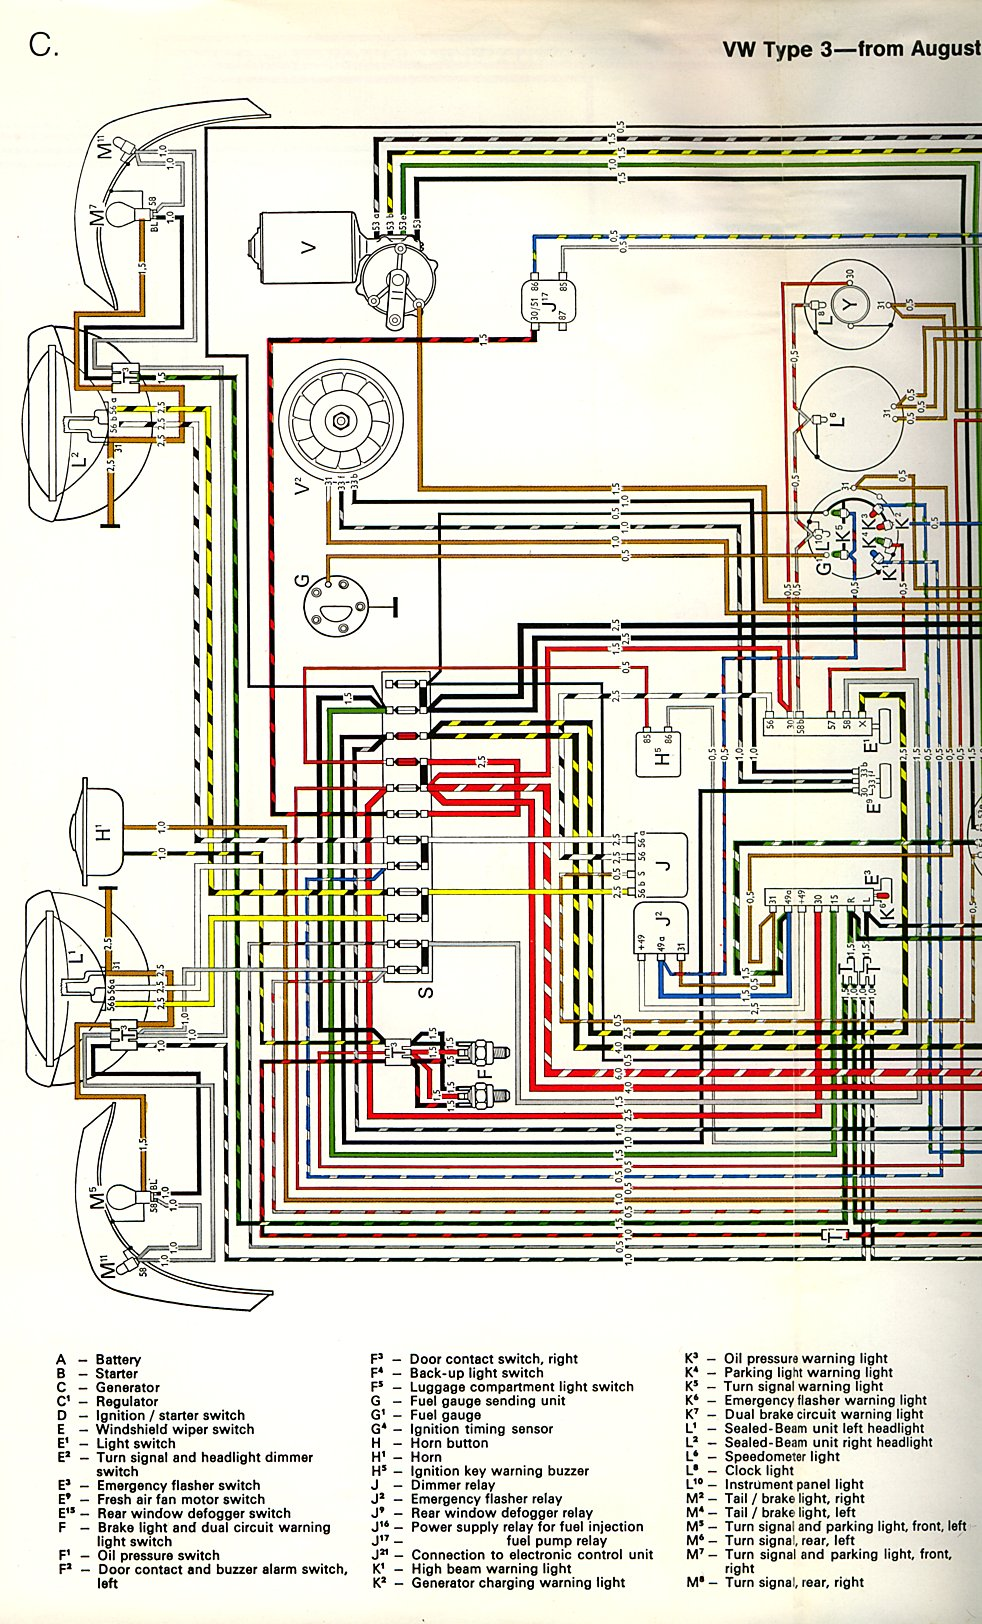 type3_72a thesamba com type 3 wiring diagrams 1978 vw wiring diagram at n-0.co